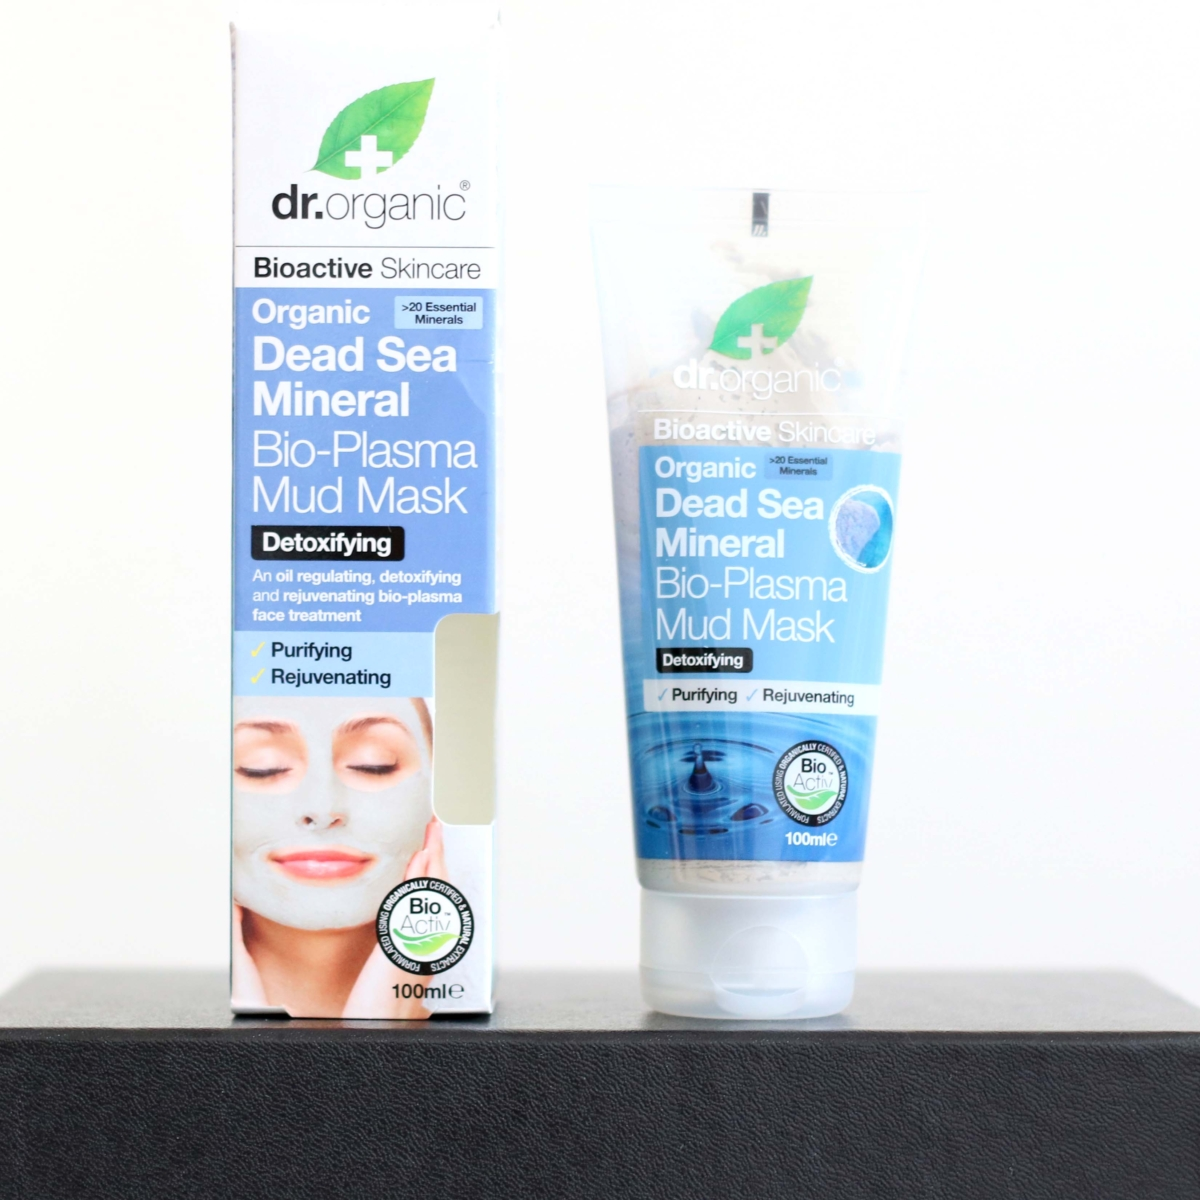 Latest in Beauty Build Your Own Box Review - Dr Organic Dead Sea Mineral Bio-Plasma Mud Mask